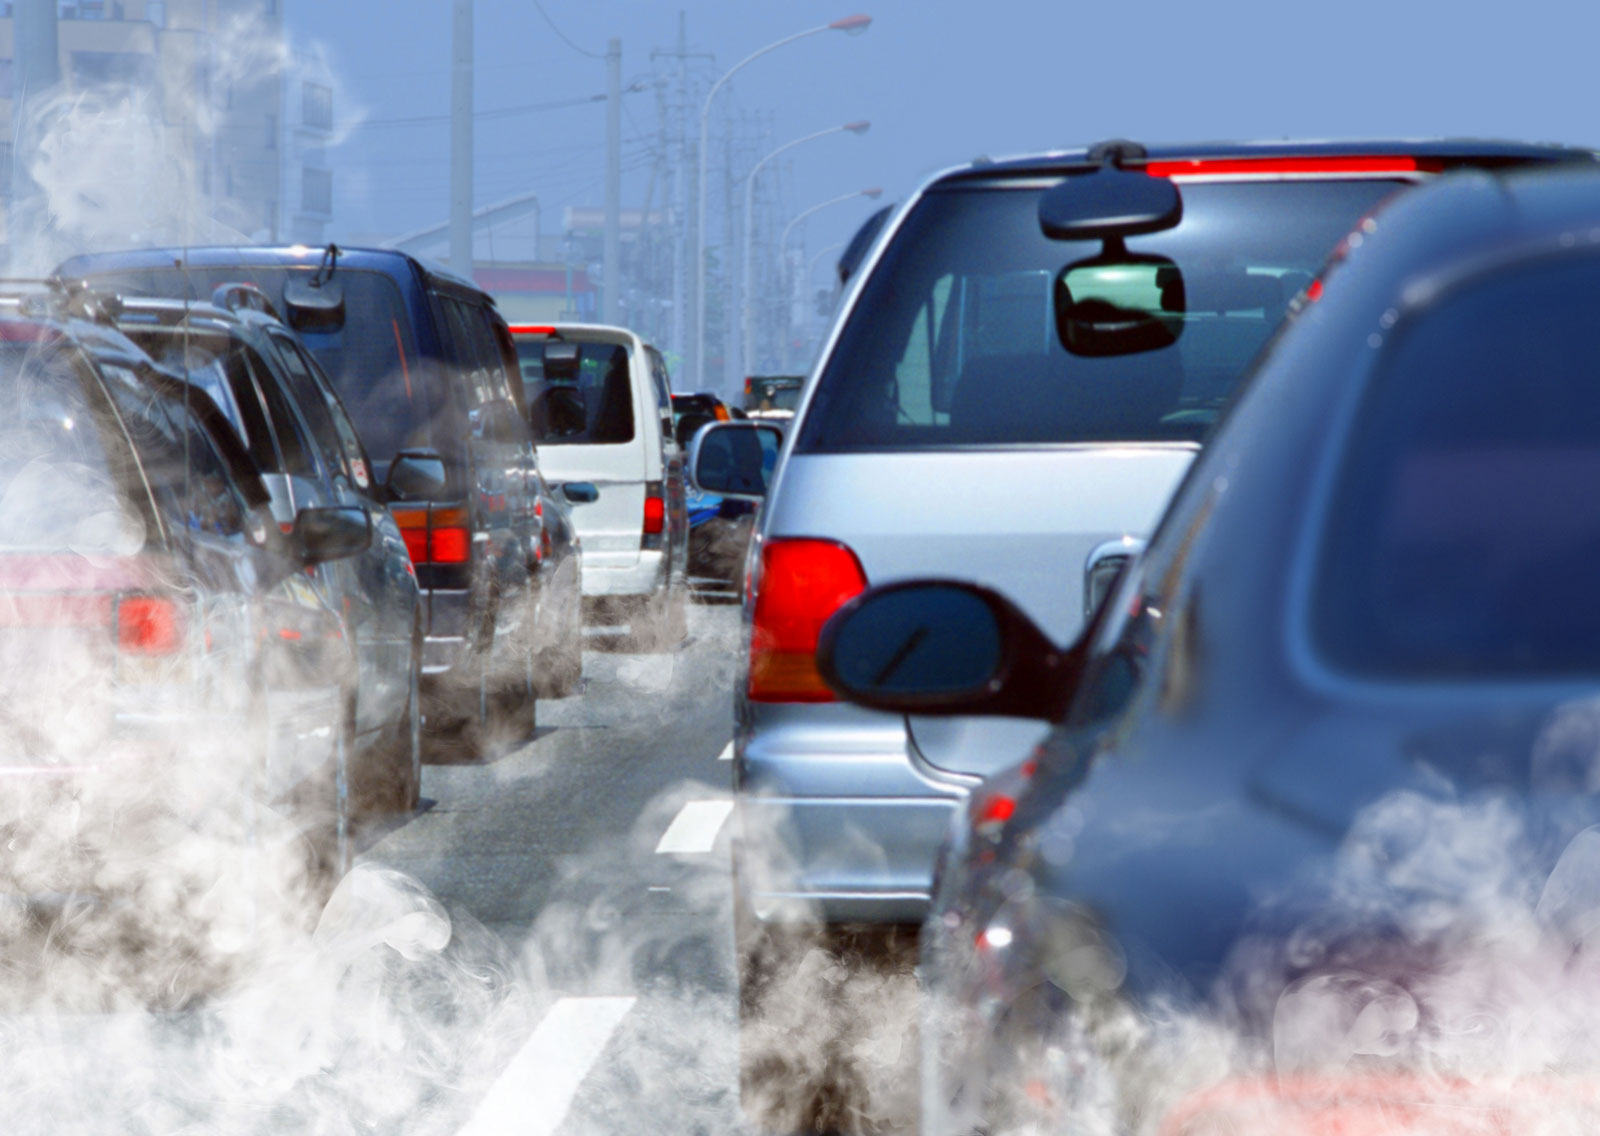 Air-pollution-vehicle-tailpipes-number-criteria-pollutants.jpg